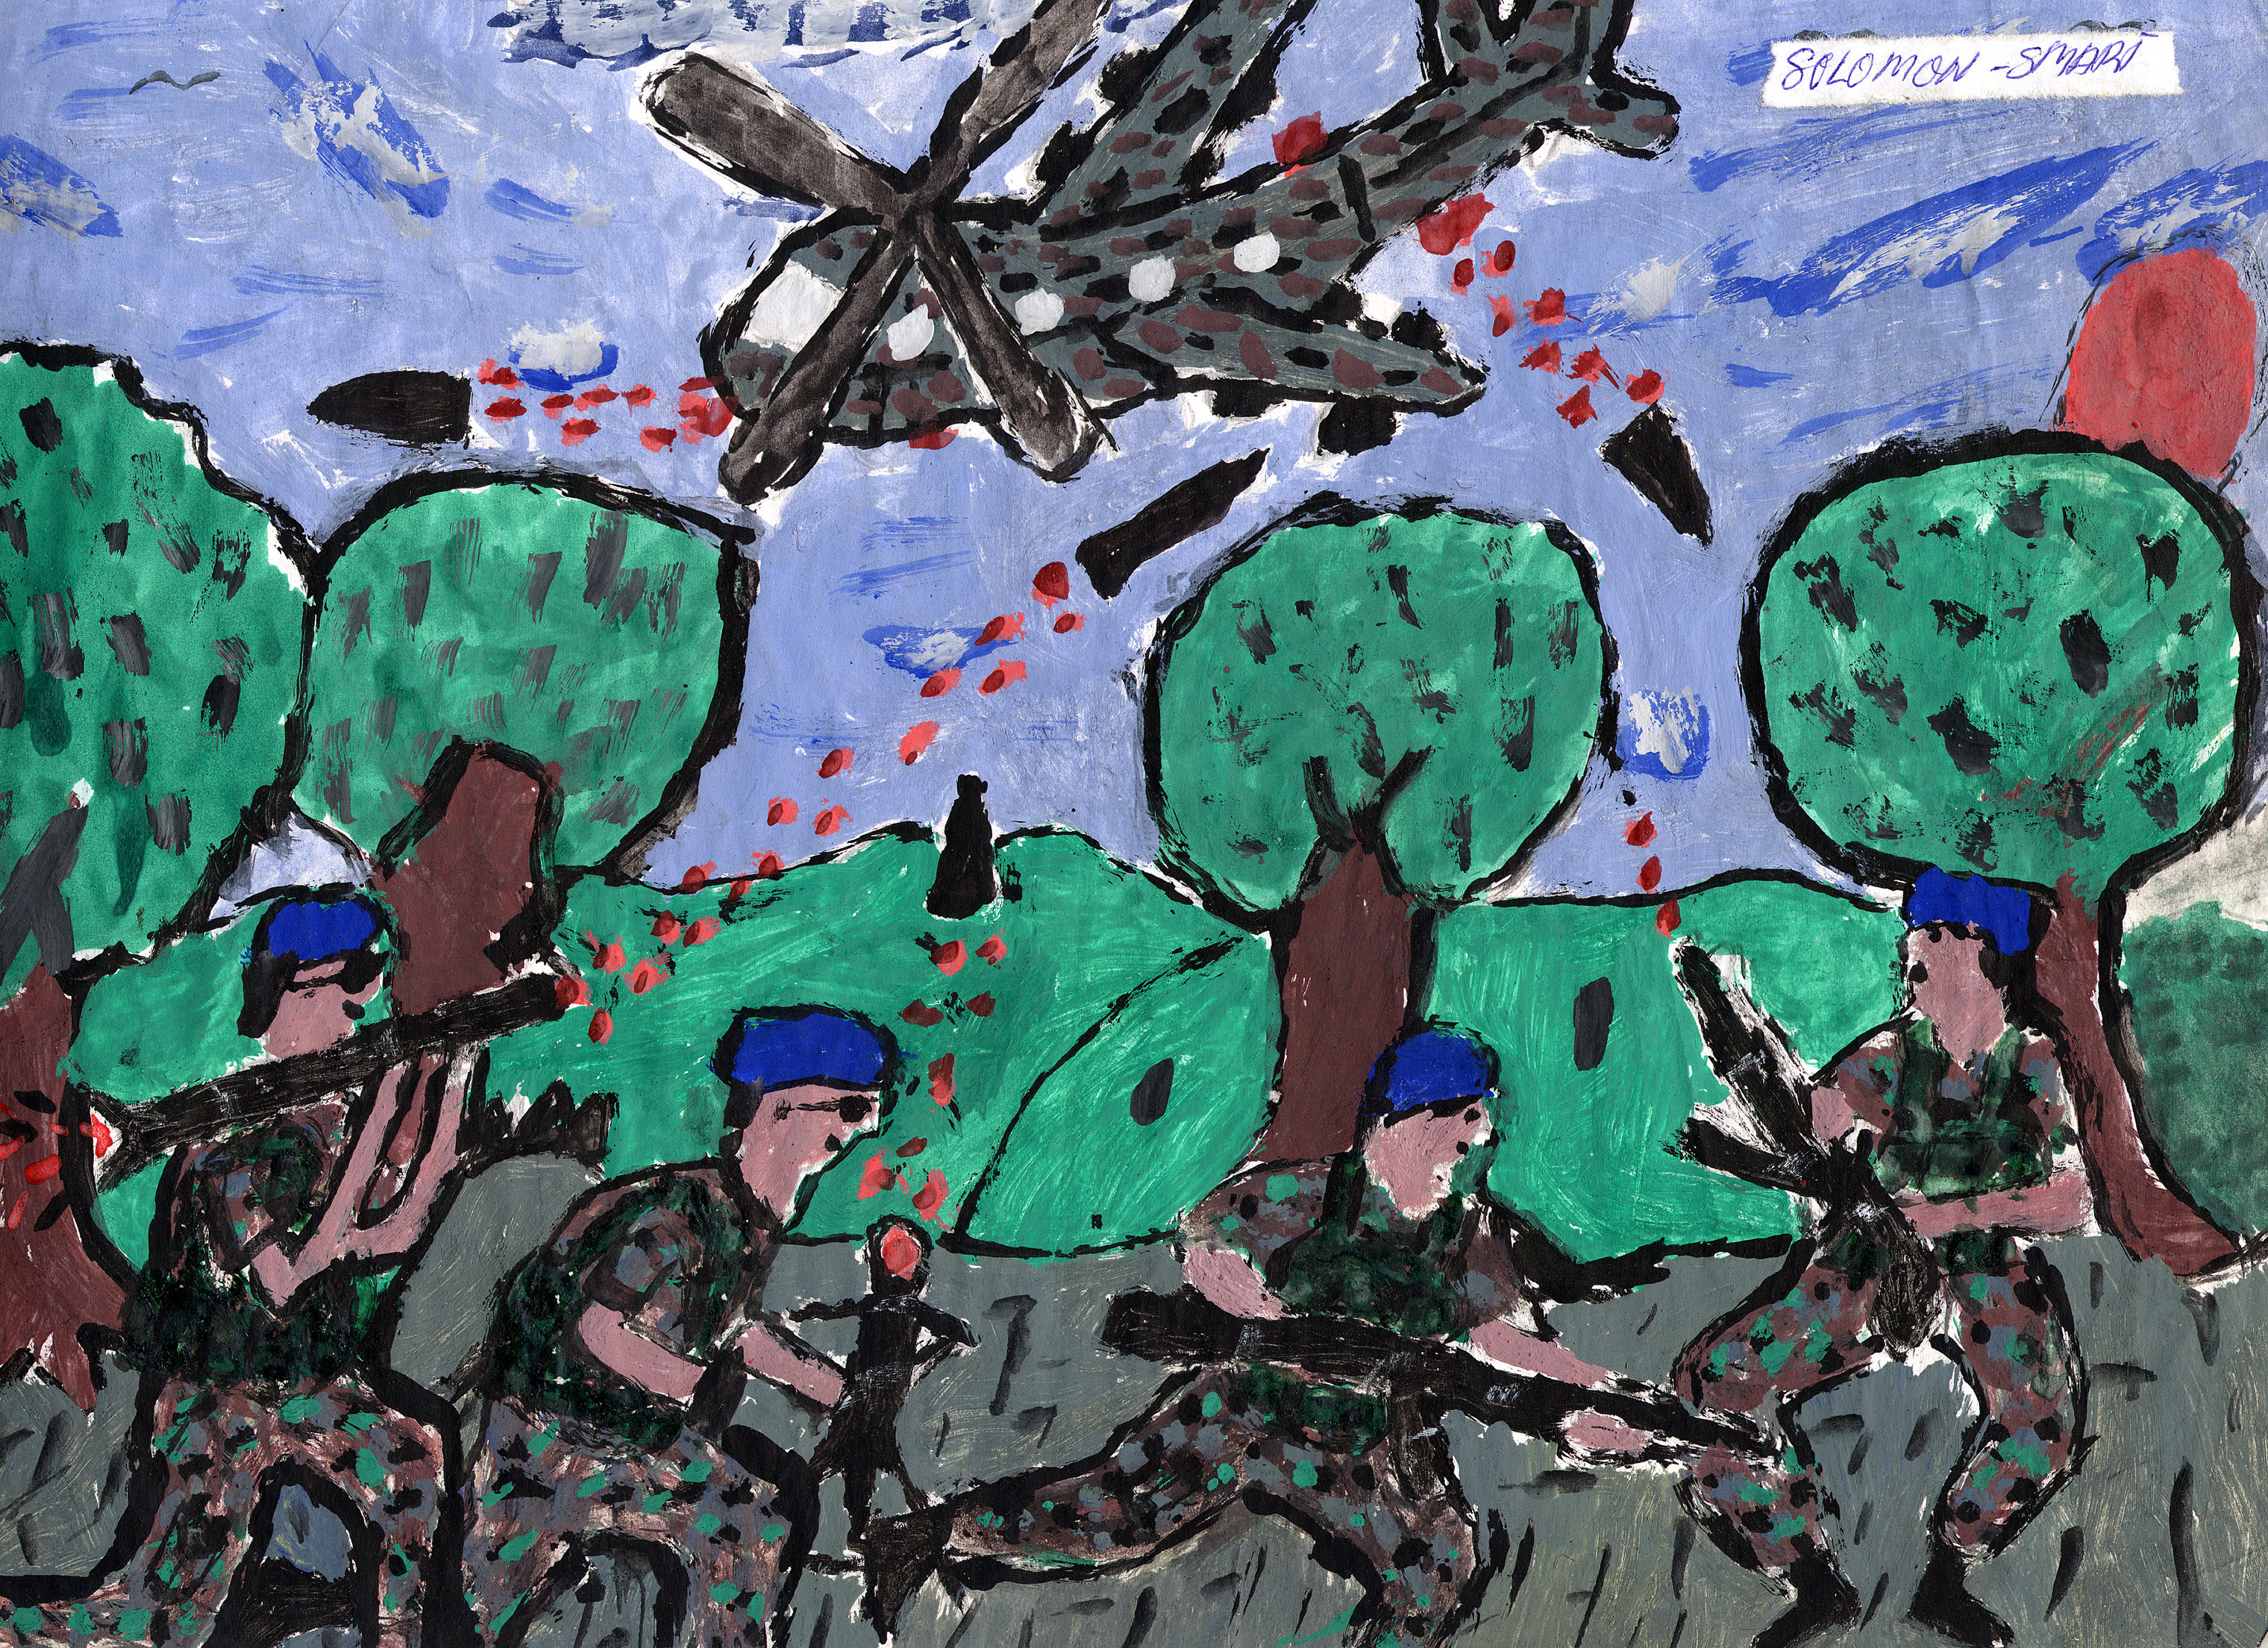 Sierra Leone suffered a civil war from 1991 to 2002. Children made up 50% of the rebel fighting force and a quarter of the government's forces. Former child soldiers were transferred to the IRC's care centers, where they drew images of their experiences.